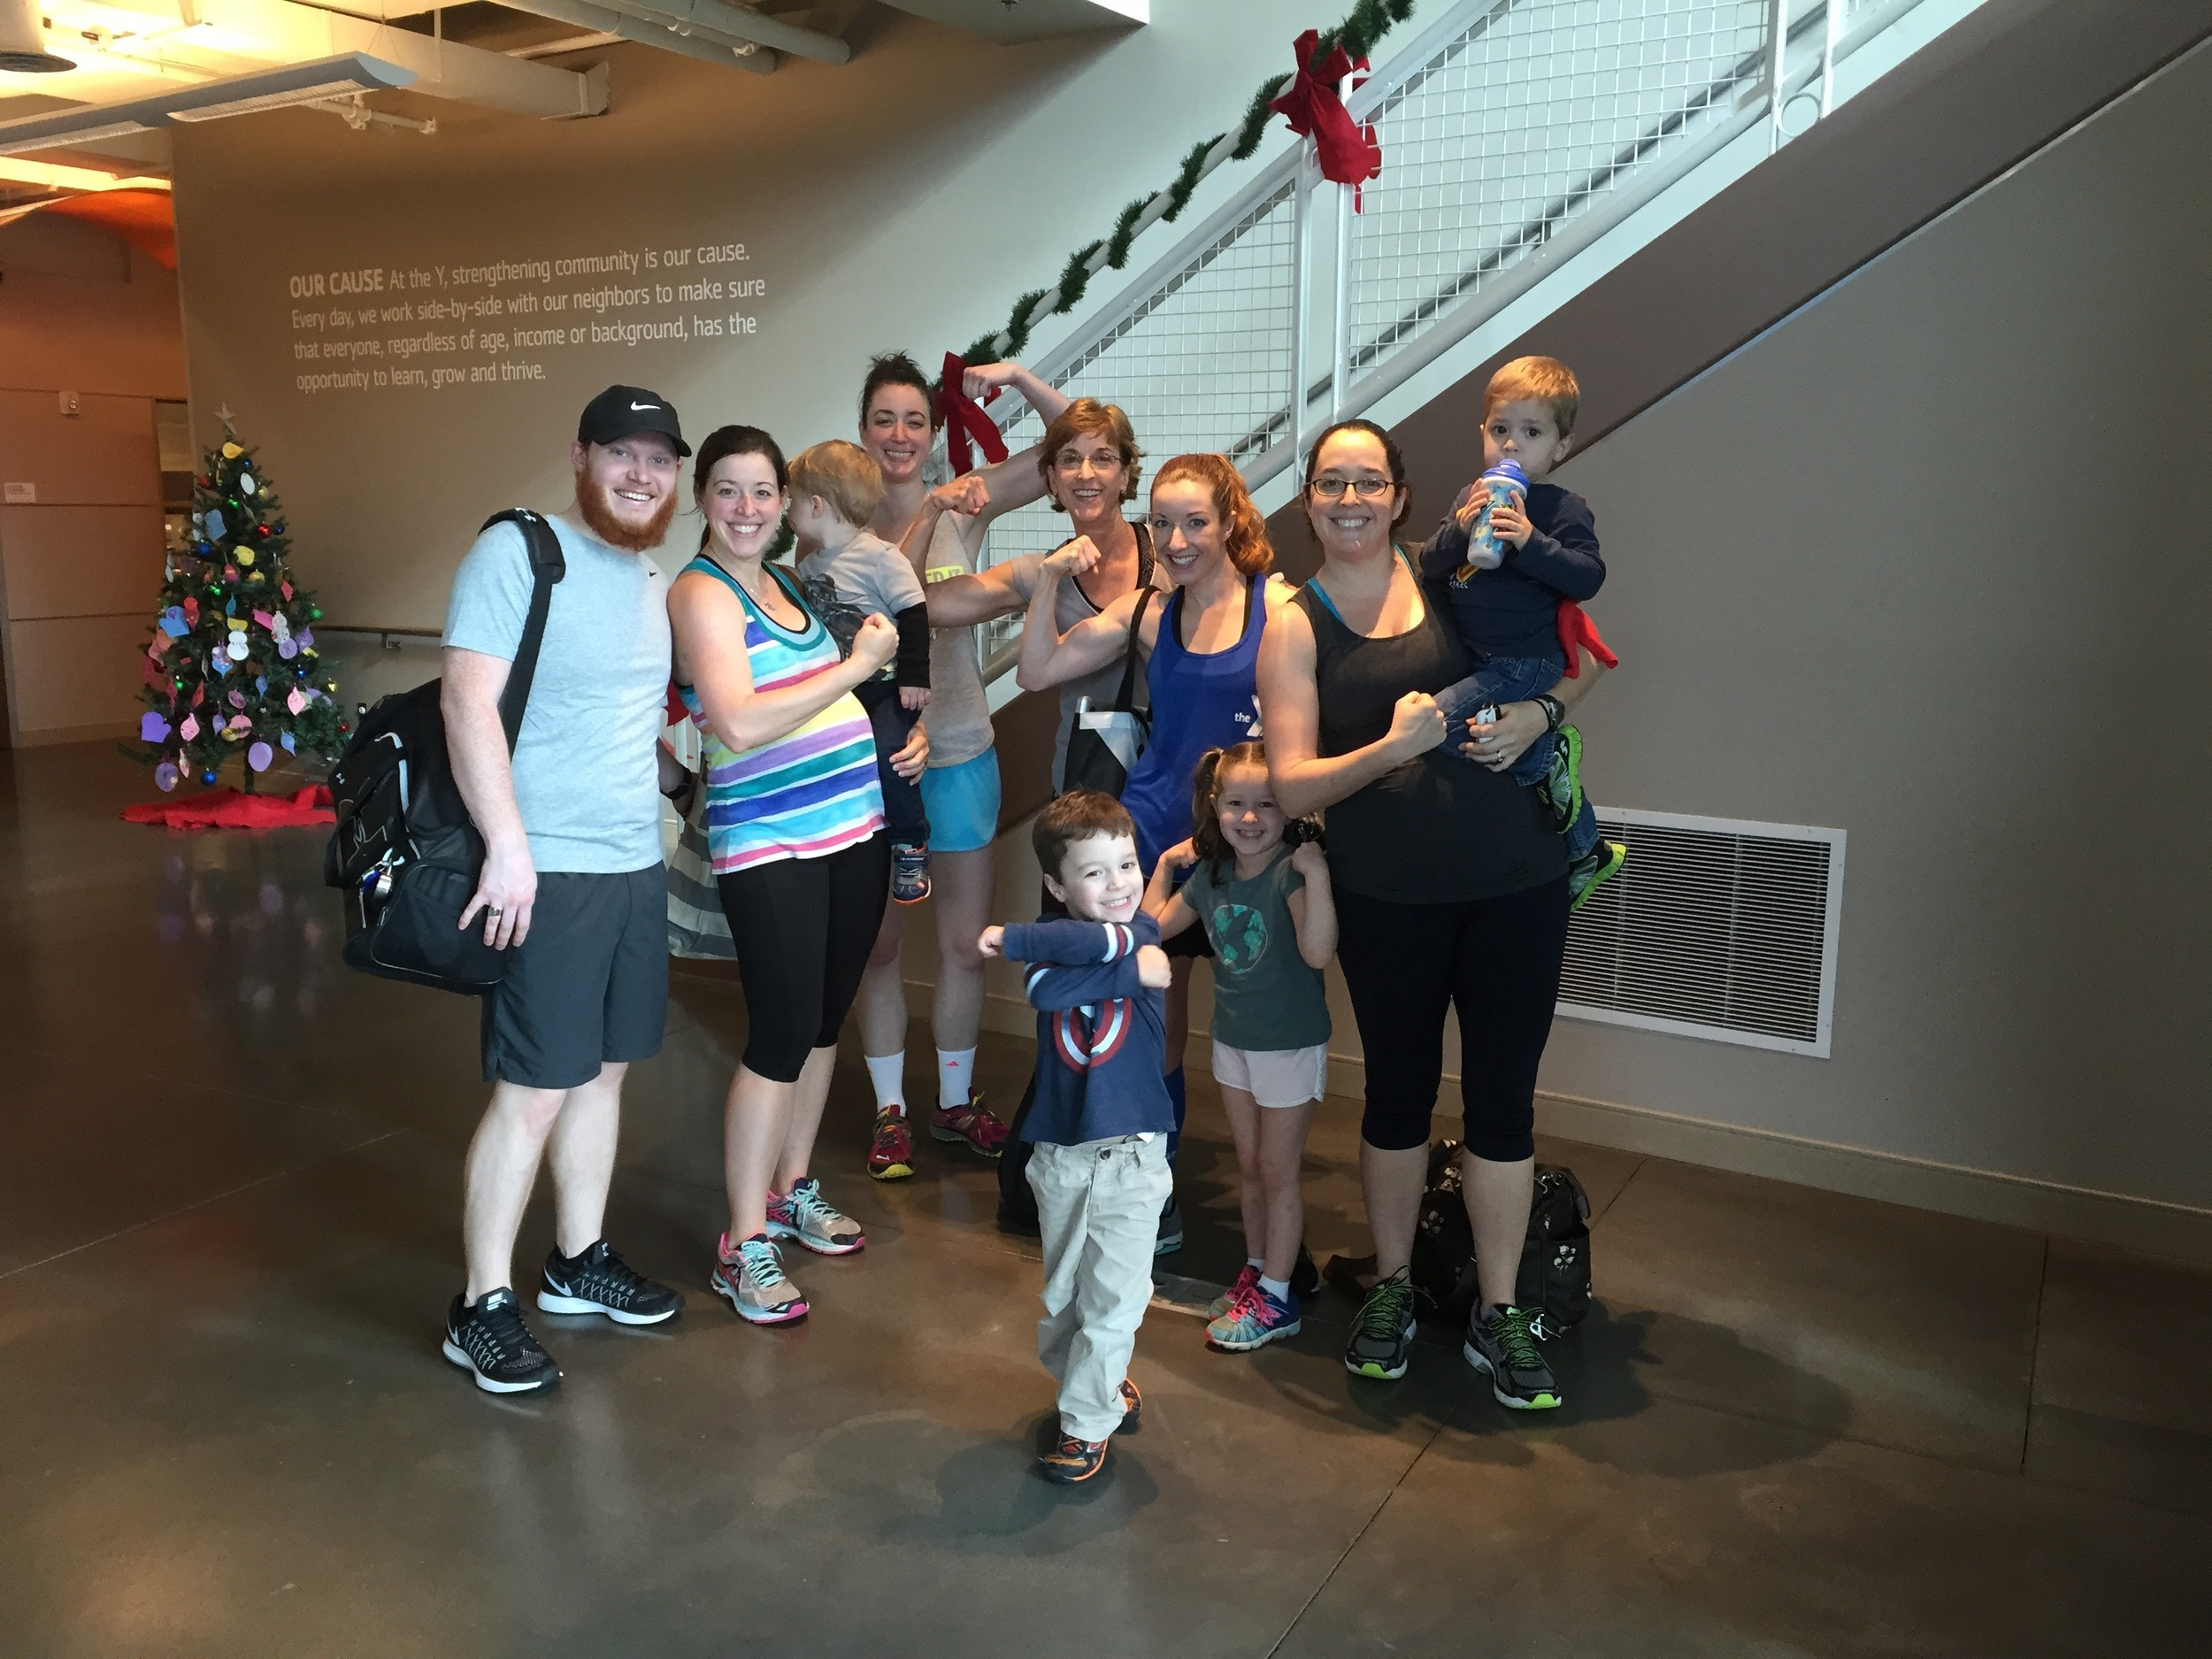 Something different: Convincing my extended family to take my BodyPump class!